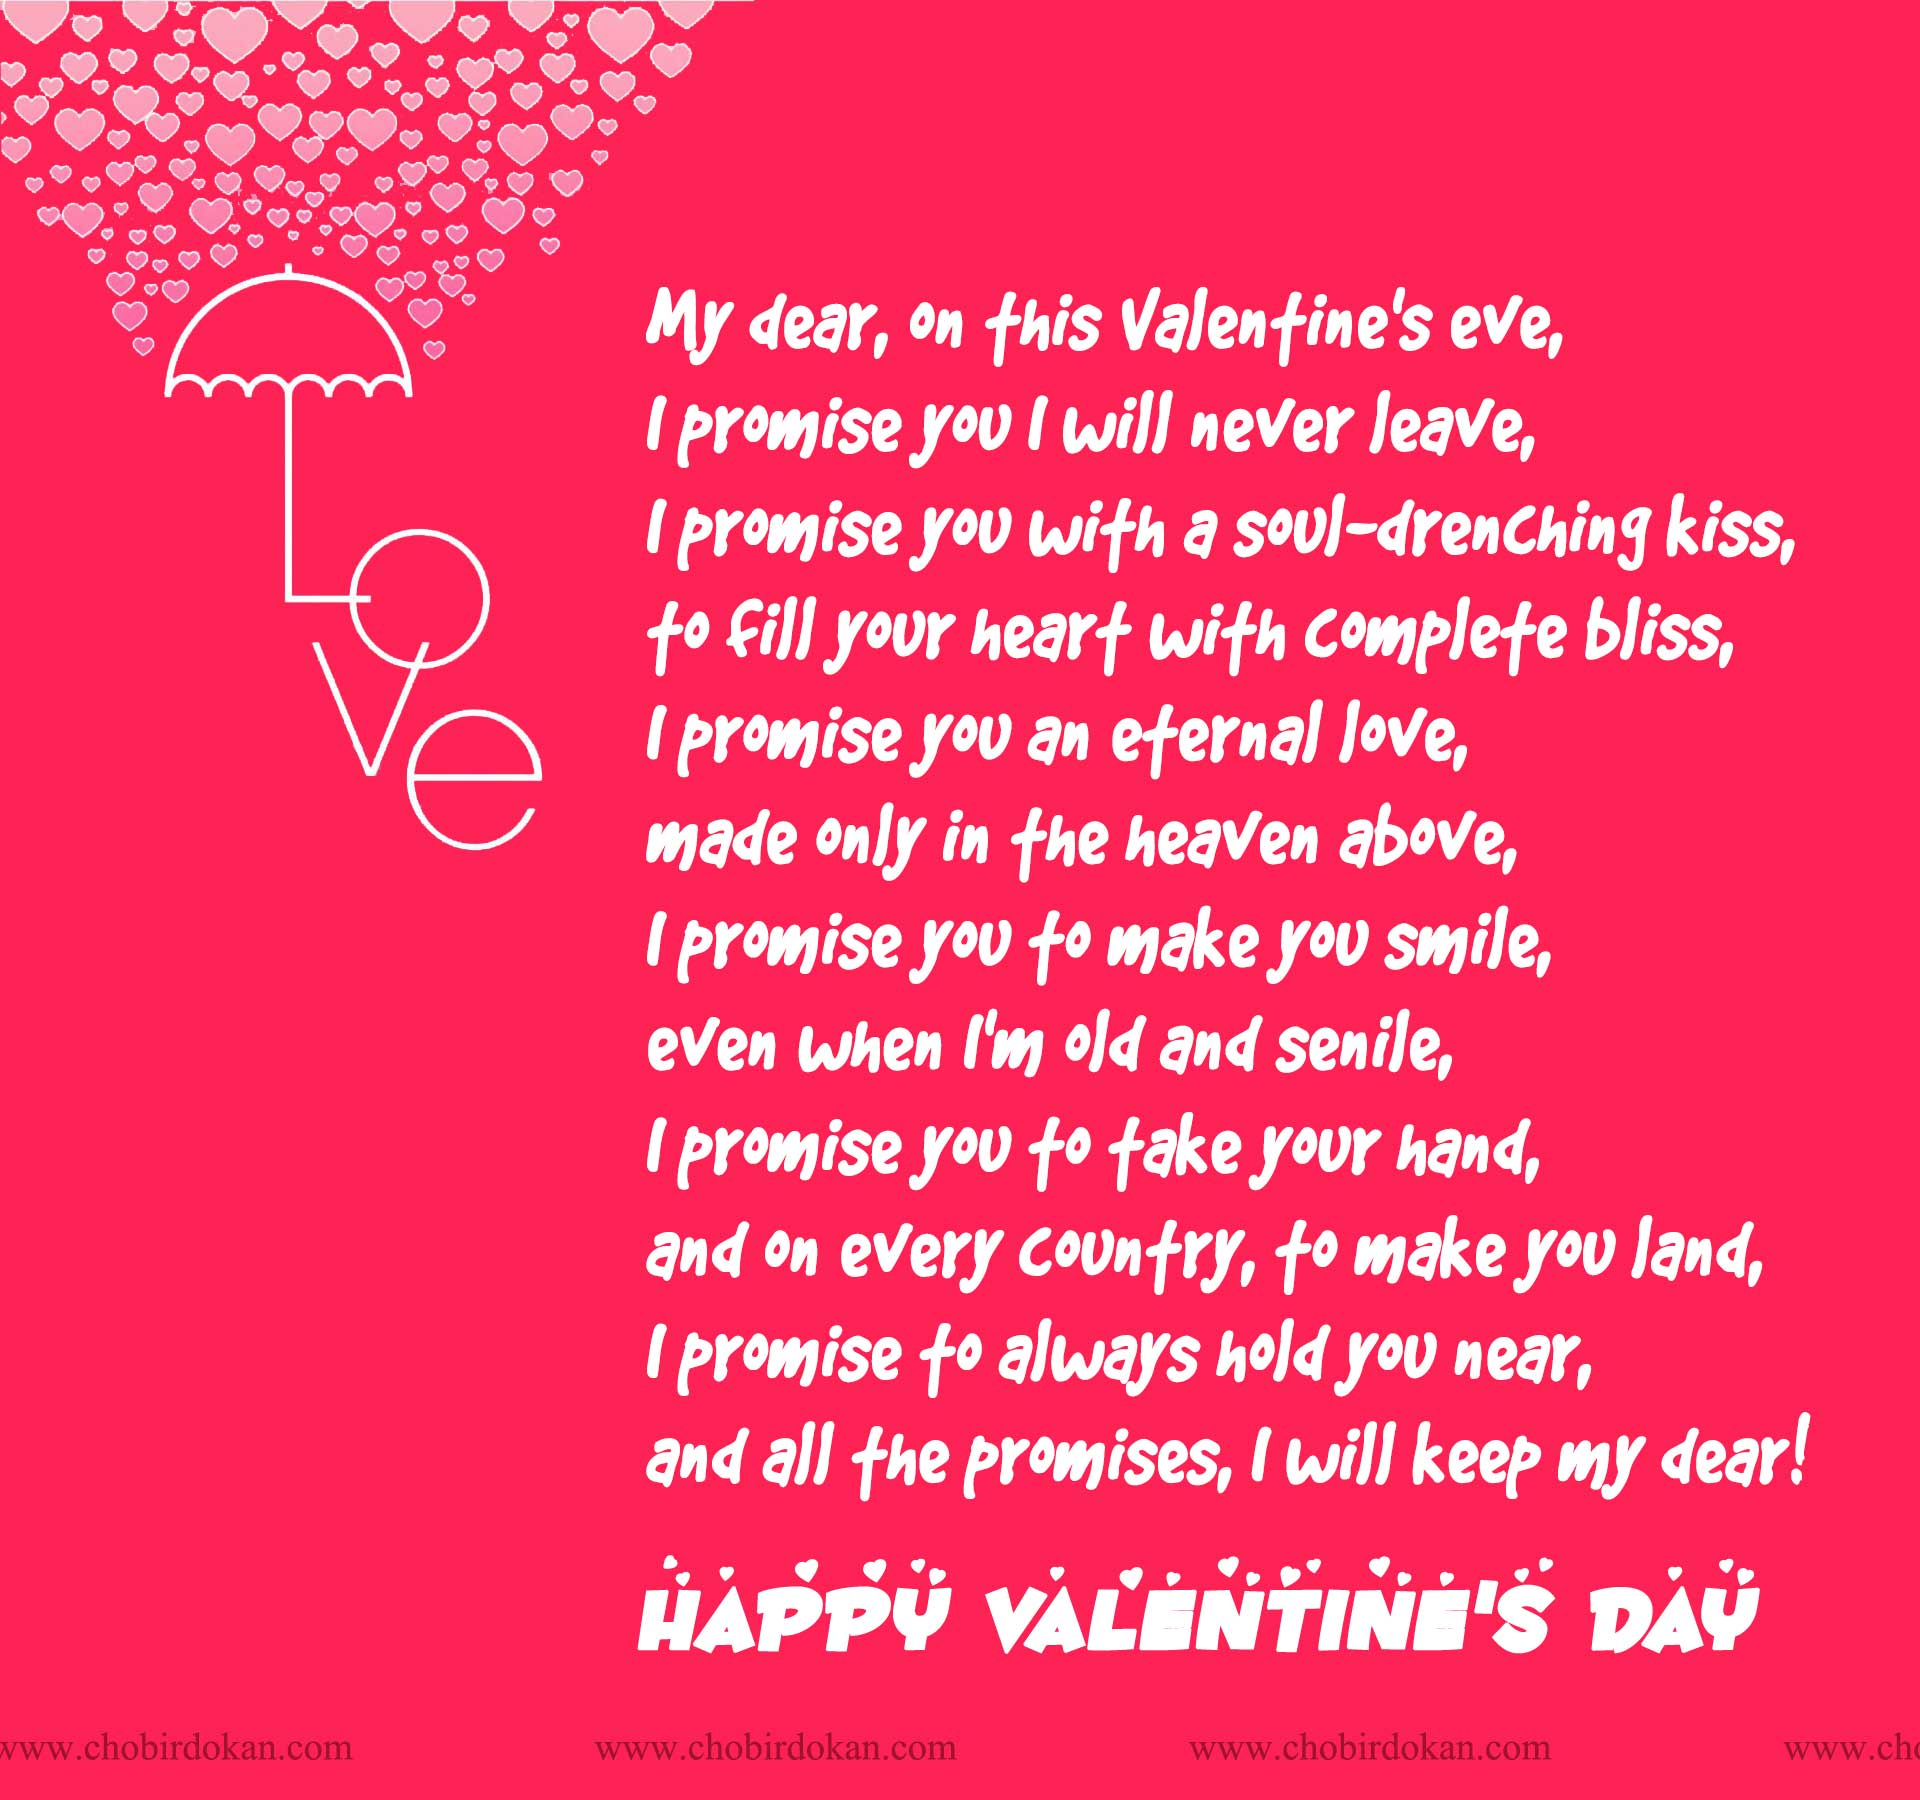 Happy Valentines Day Poems For Her For Your Girlfriend Or Wife